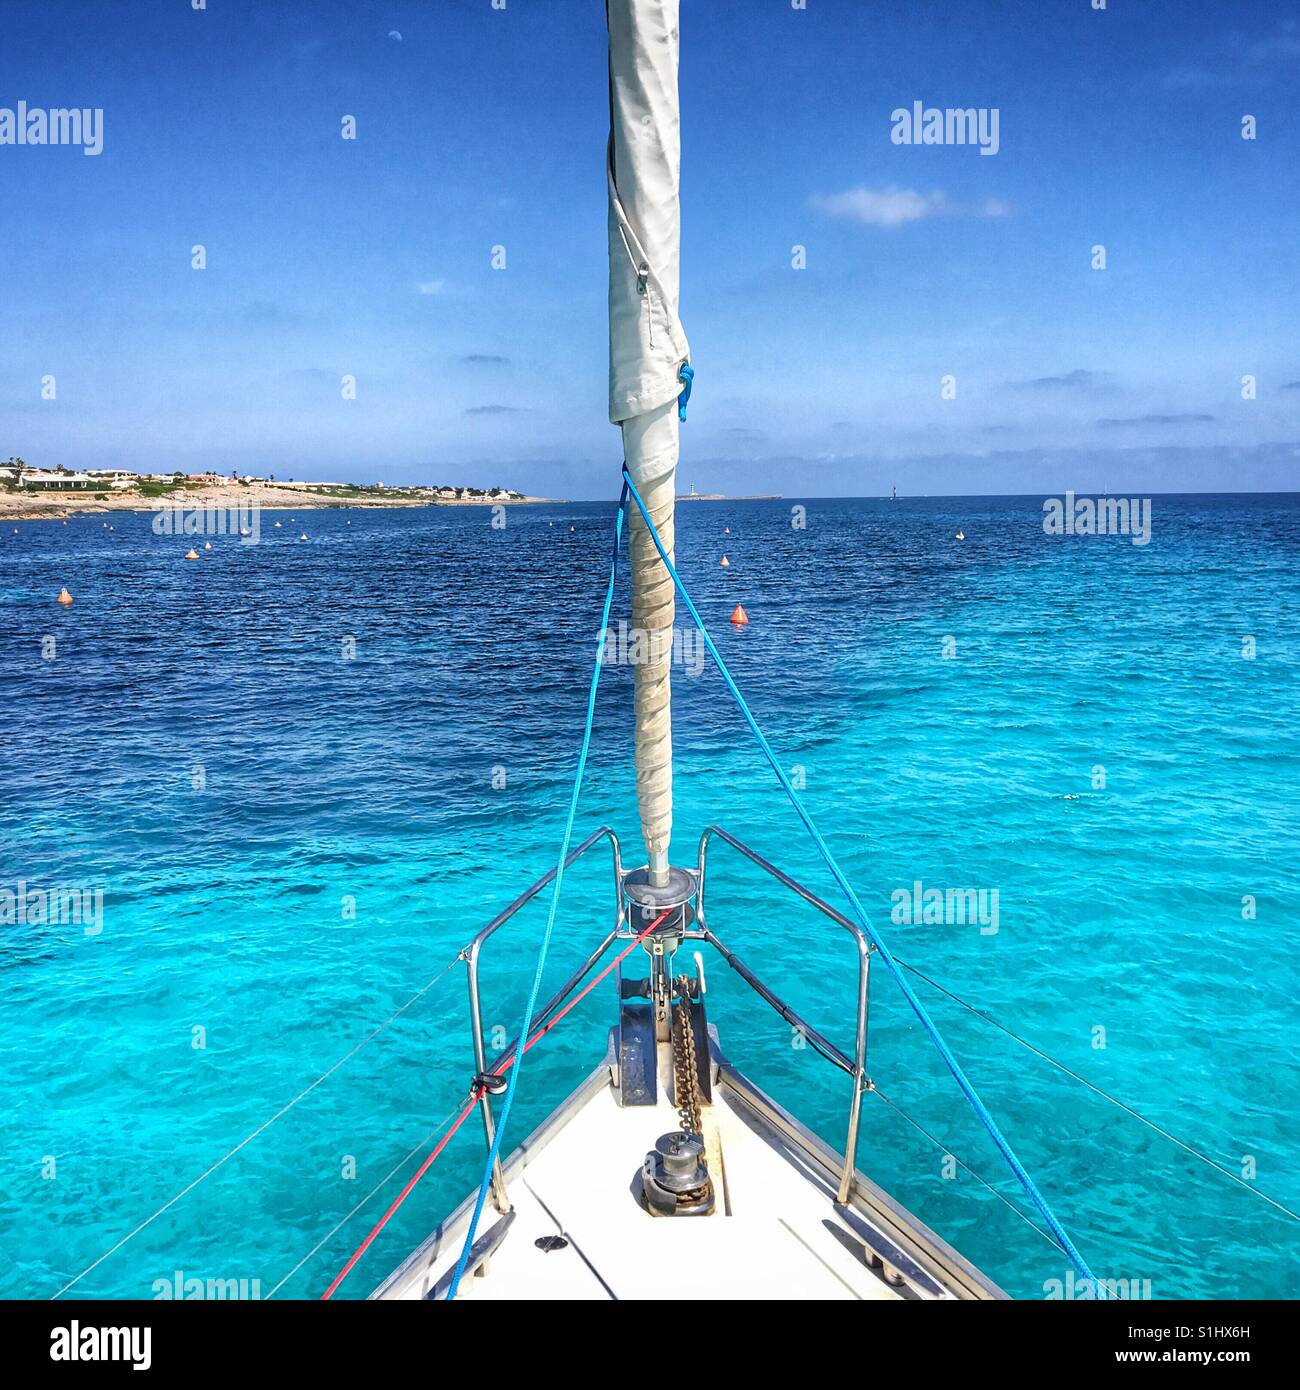 Sailing yacht anchored in azure blue water - Stock Image